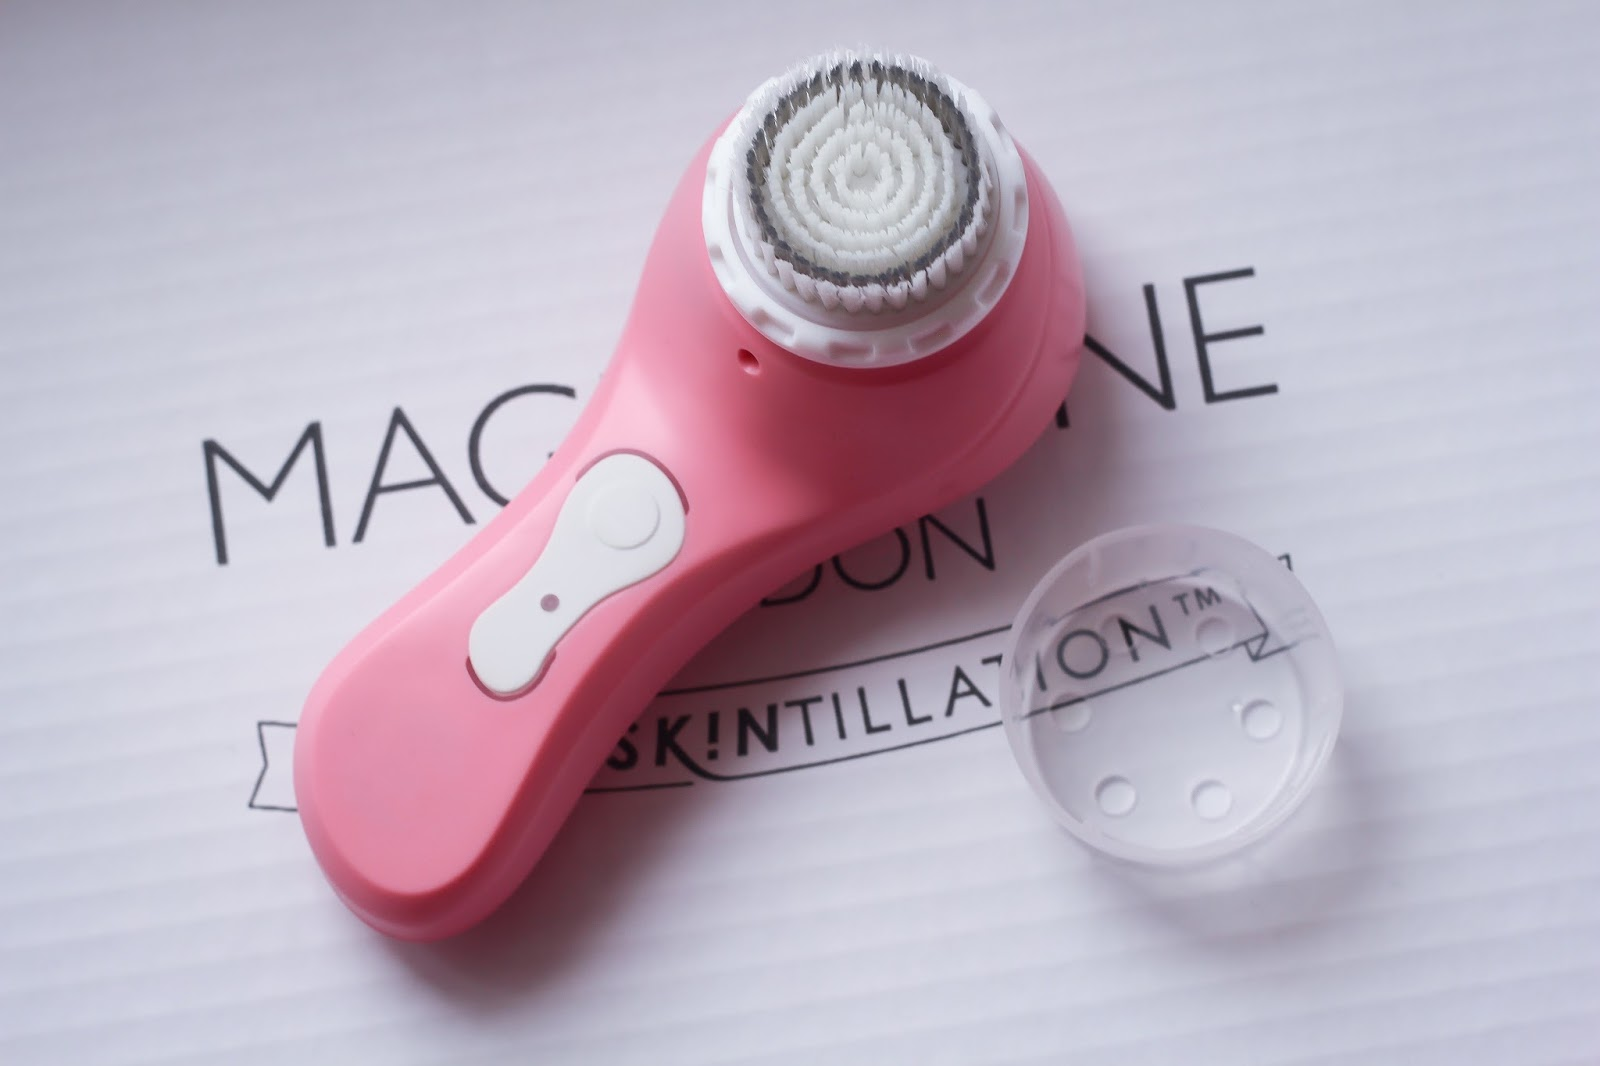 Magnitone BareFaced VibraSonic Cleansing Face Brush, Magnitone Barefaced, Magnitone, Facial Cleansing Brush, Sonic Cleansing